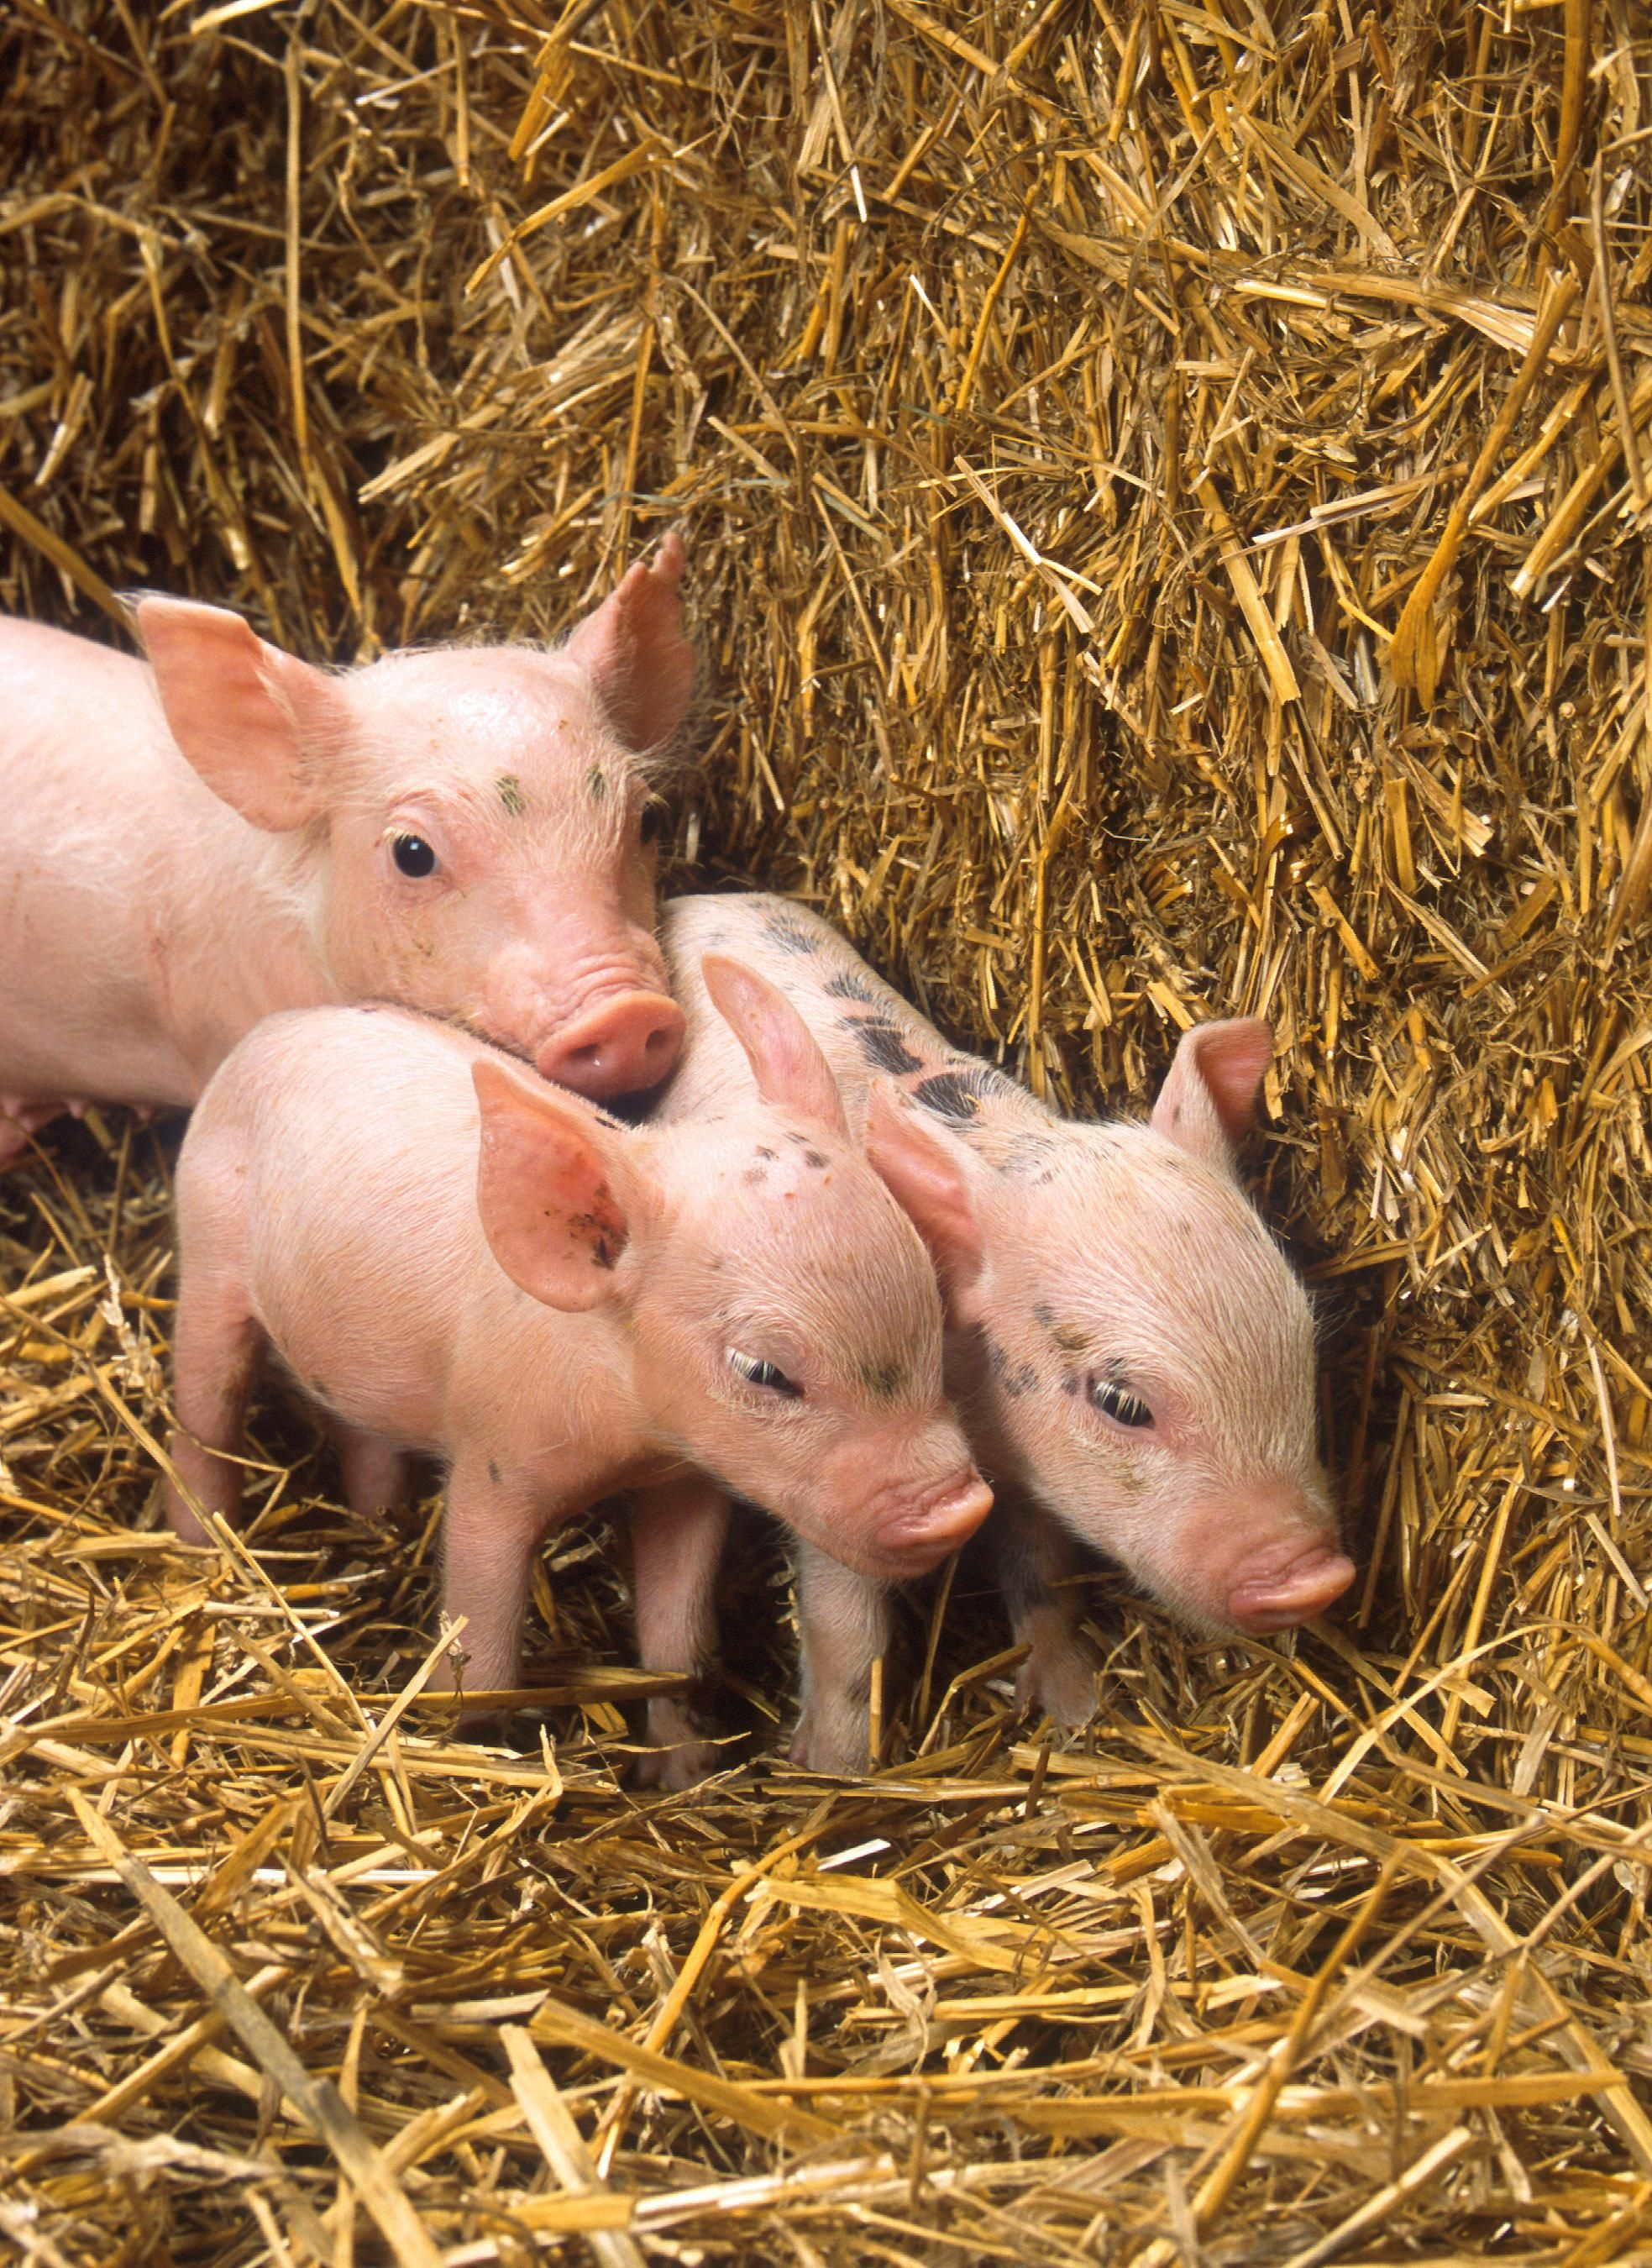 free picture piglets small cute pigs